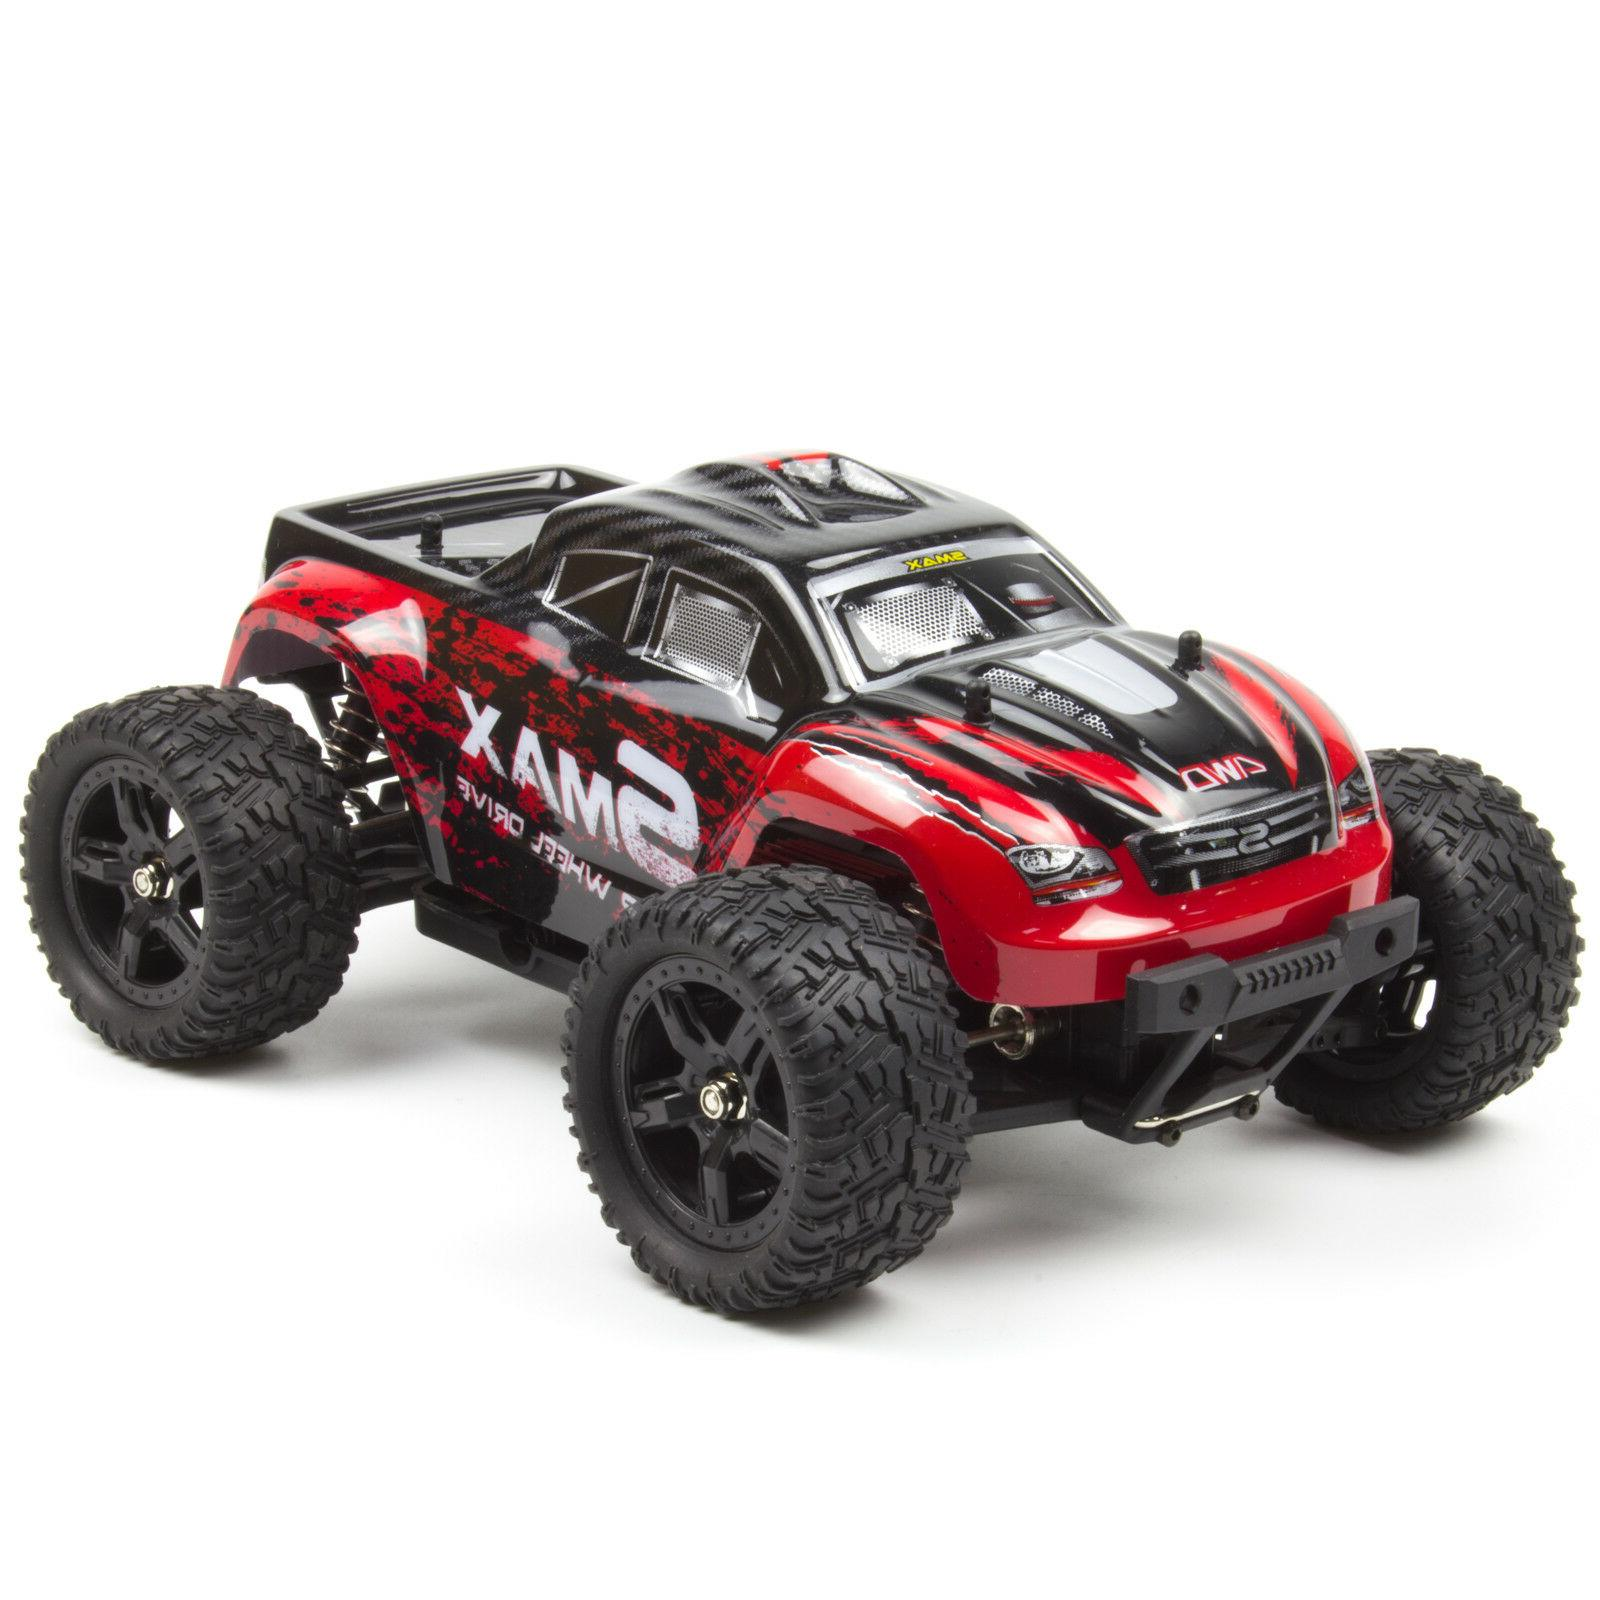 REMO RC Truck 2.4Ghz Bushed Red